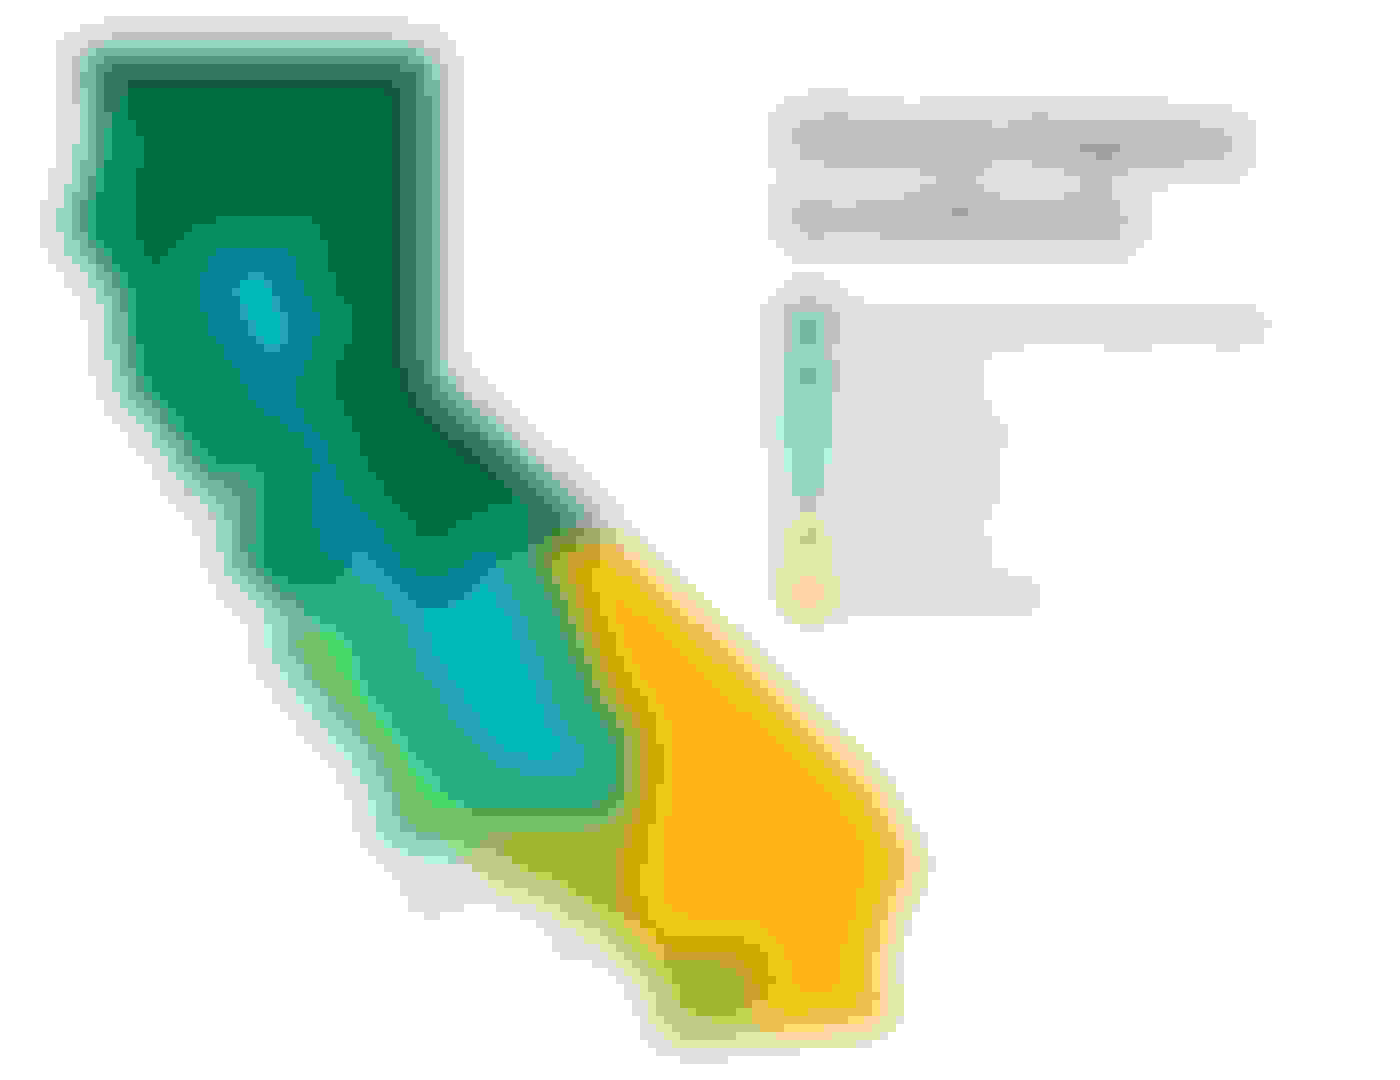 map of California's climate regions